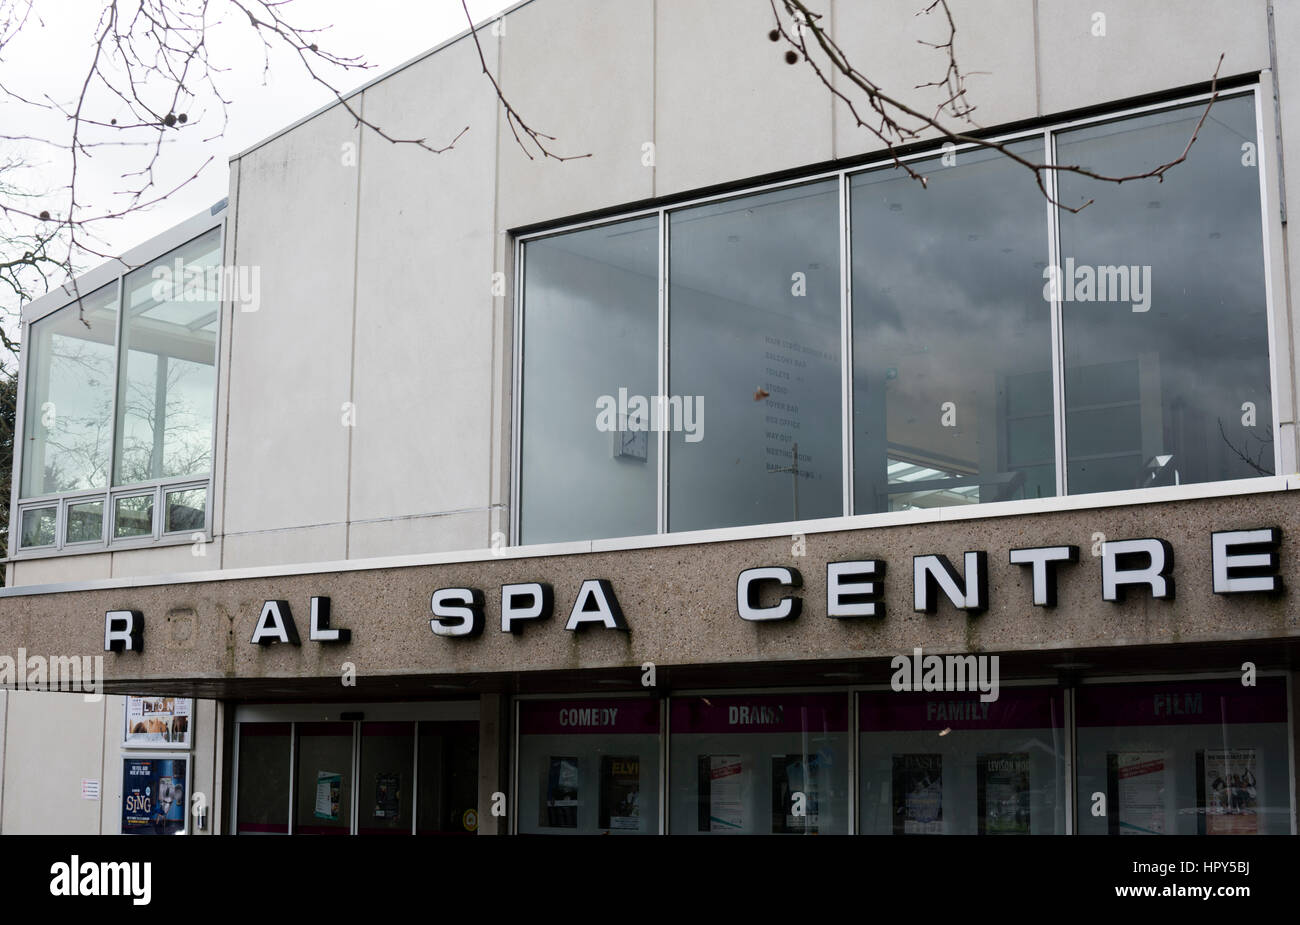 Missing letters on the Royal Spa Centre, Leamington Spa, Warwickshire, UK - Stock Image